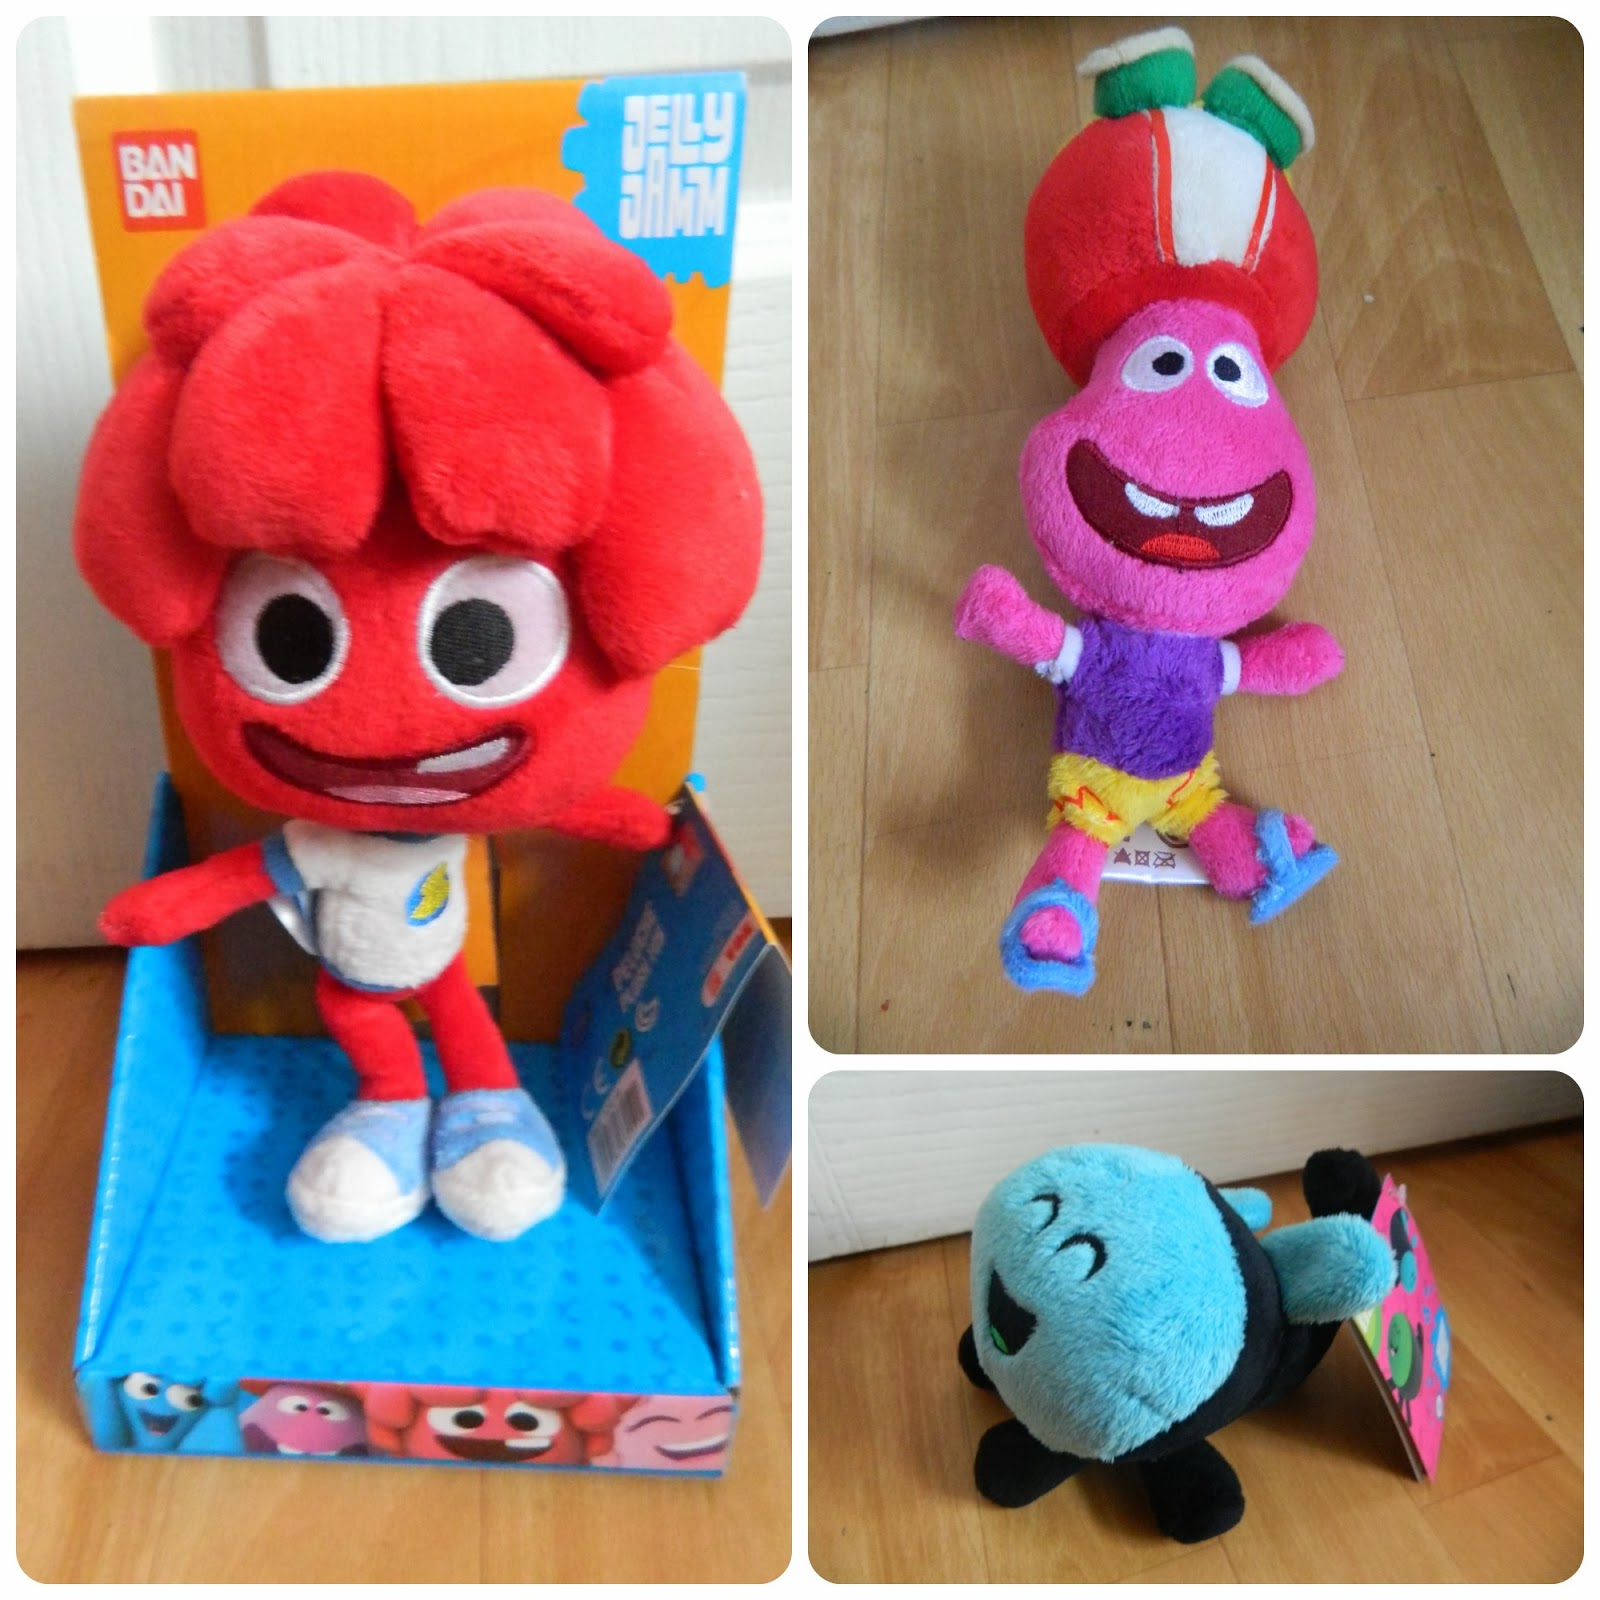 Jelly Jamm Plush toys range Bello Dodo Goomo